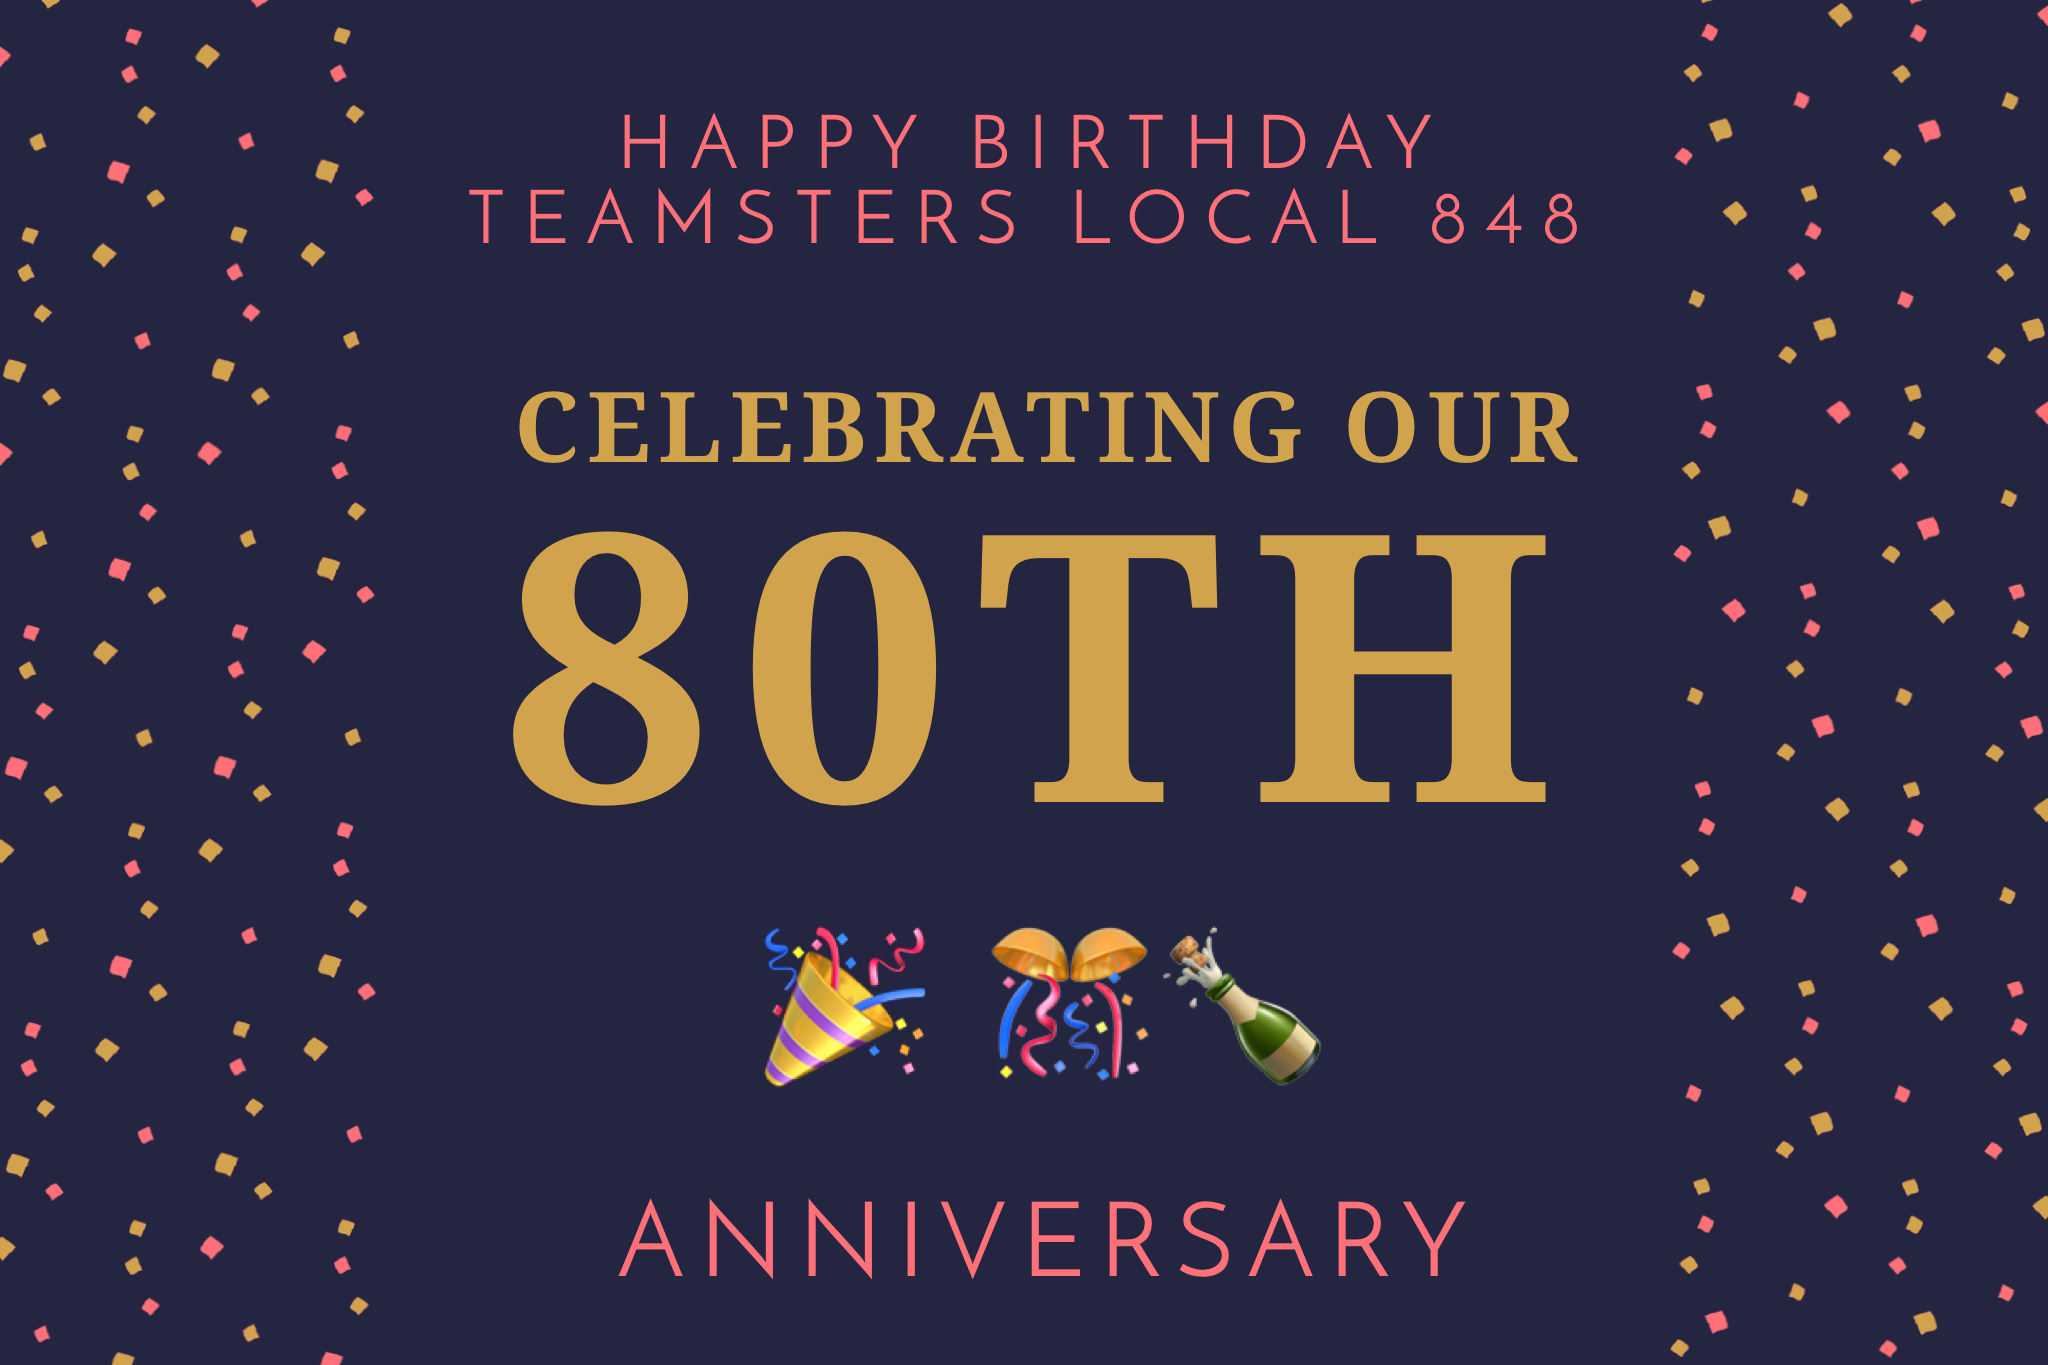 Happy Birthday Teamsters Local 848